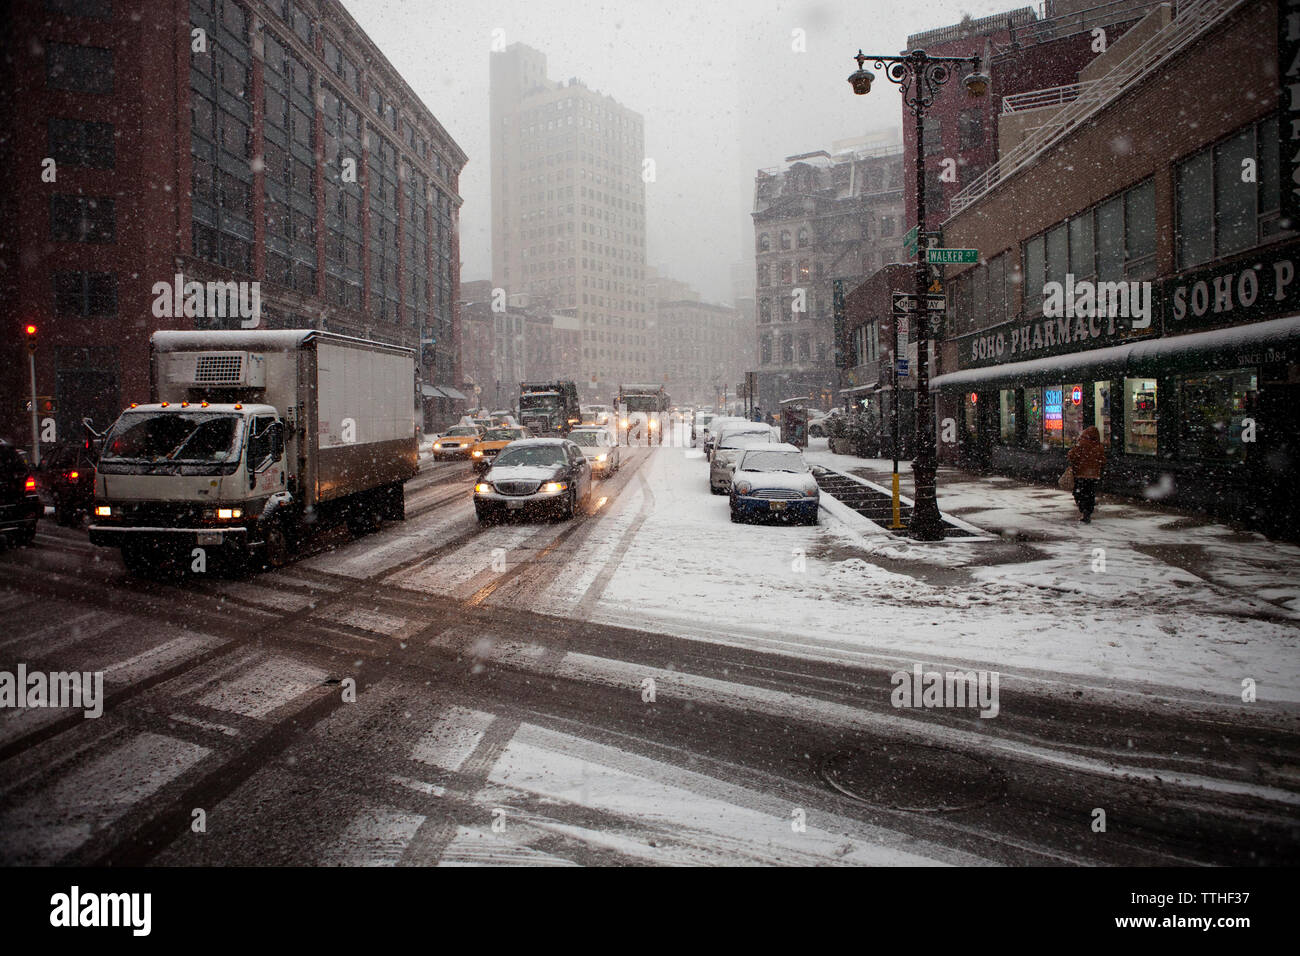 Vehicles on road amidst buildings in city during snowfall - Stock Image